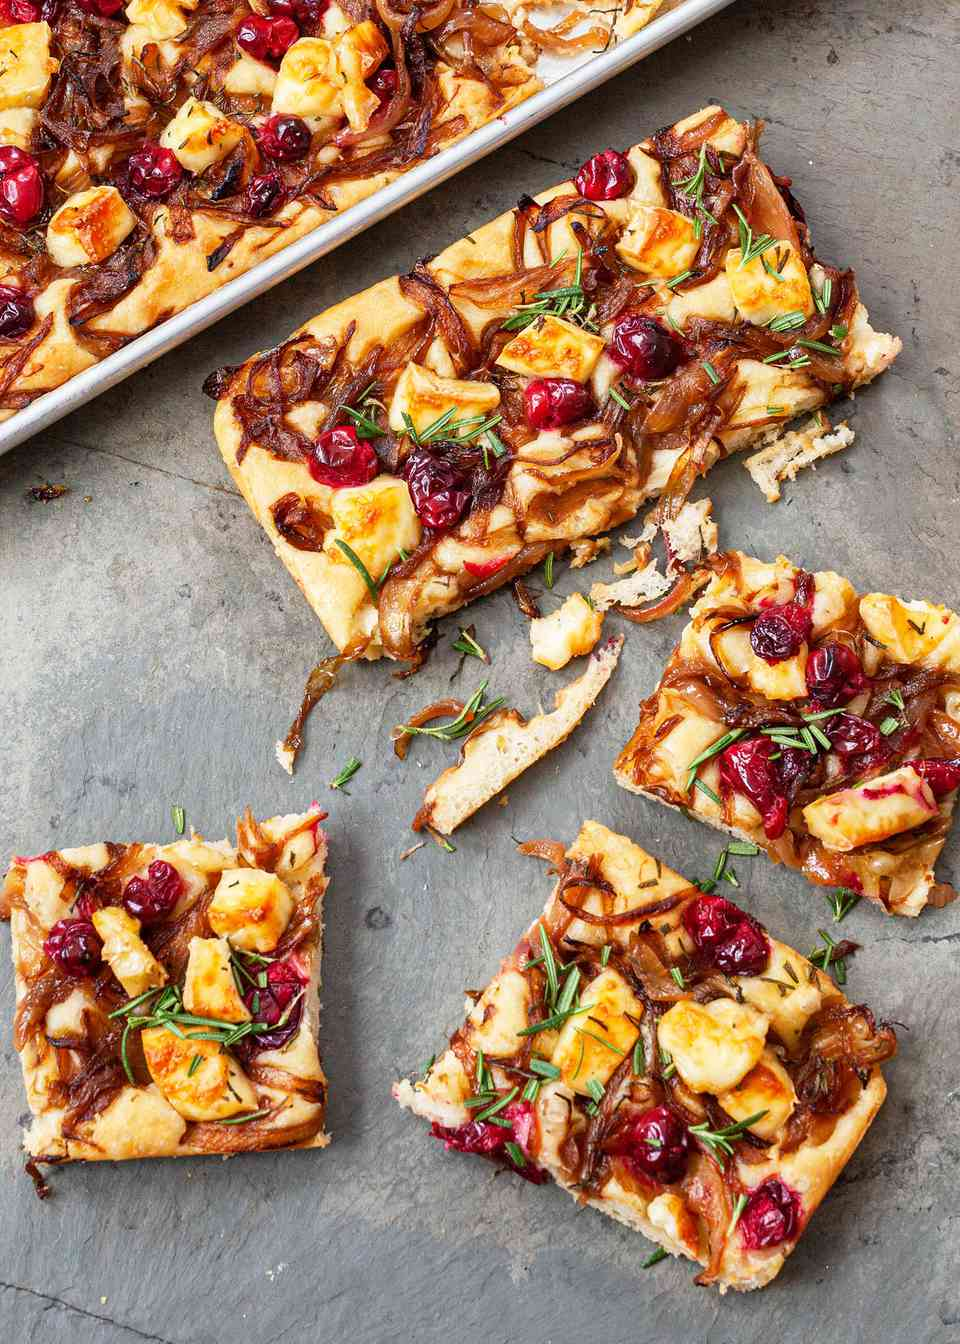 Slices of focaccia topped with caramelized onion, cranberry, and brie.